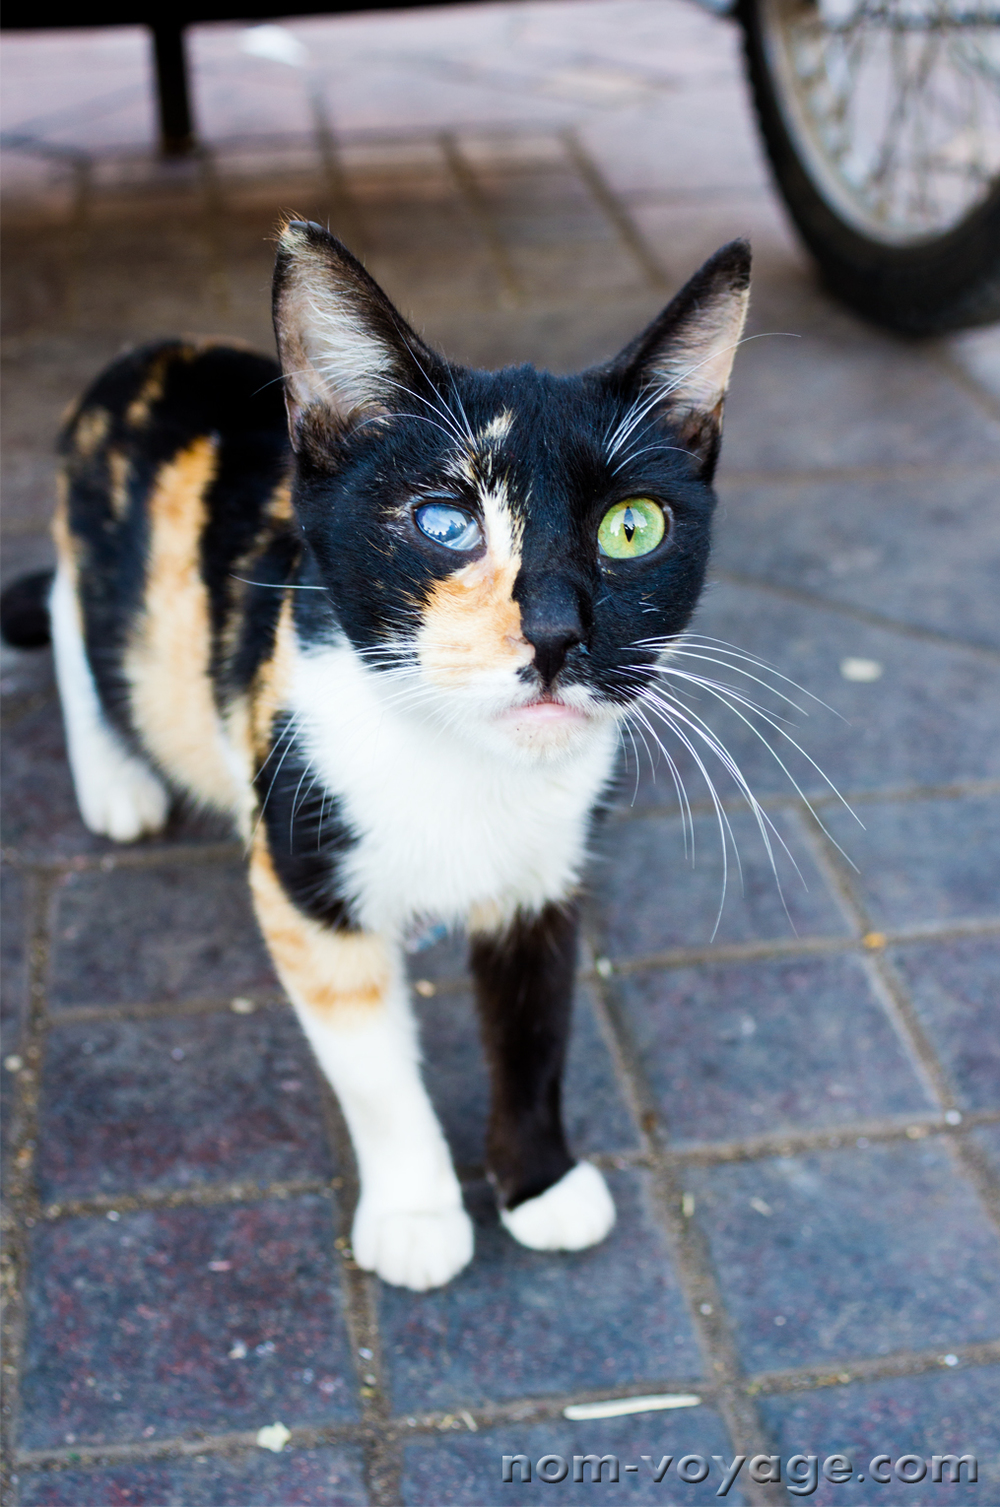 A friendly calico kitty looking for food at Jemaa El Fna.